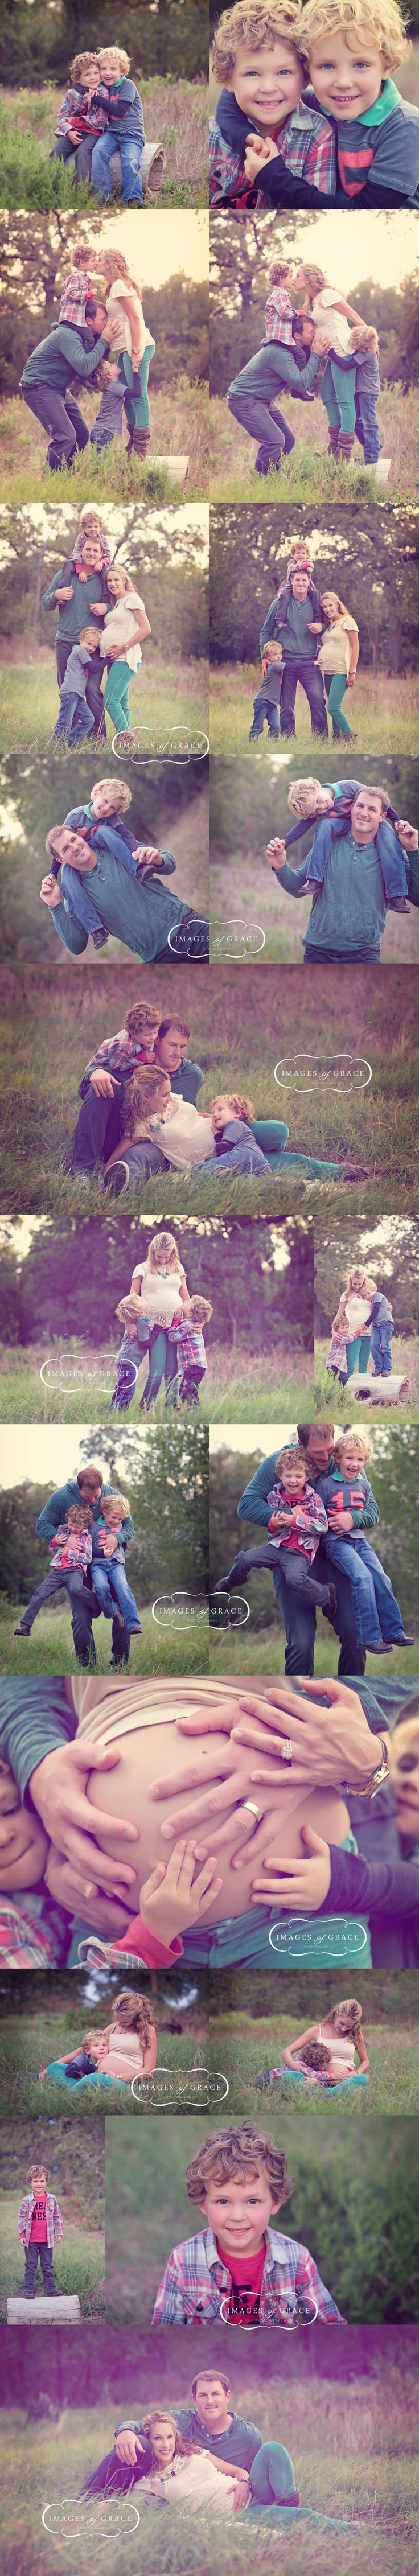 Oh my gosh...these are perfect maternity pictures :)